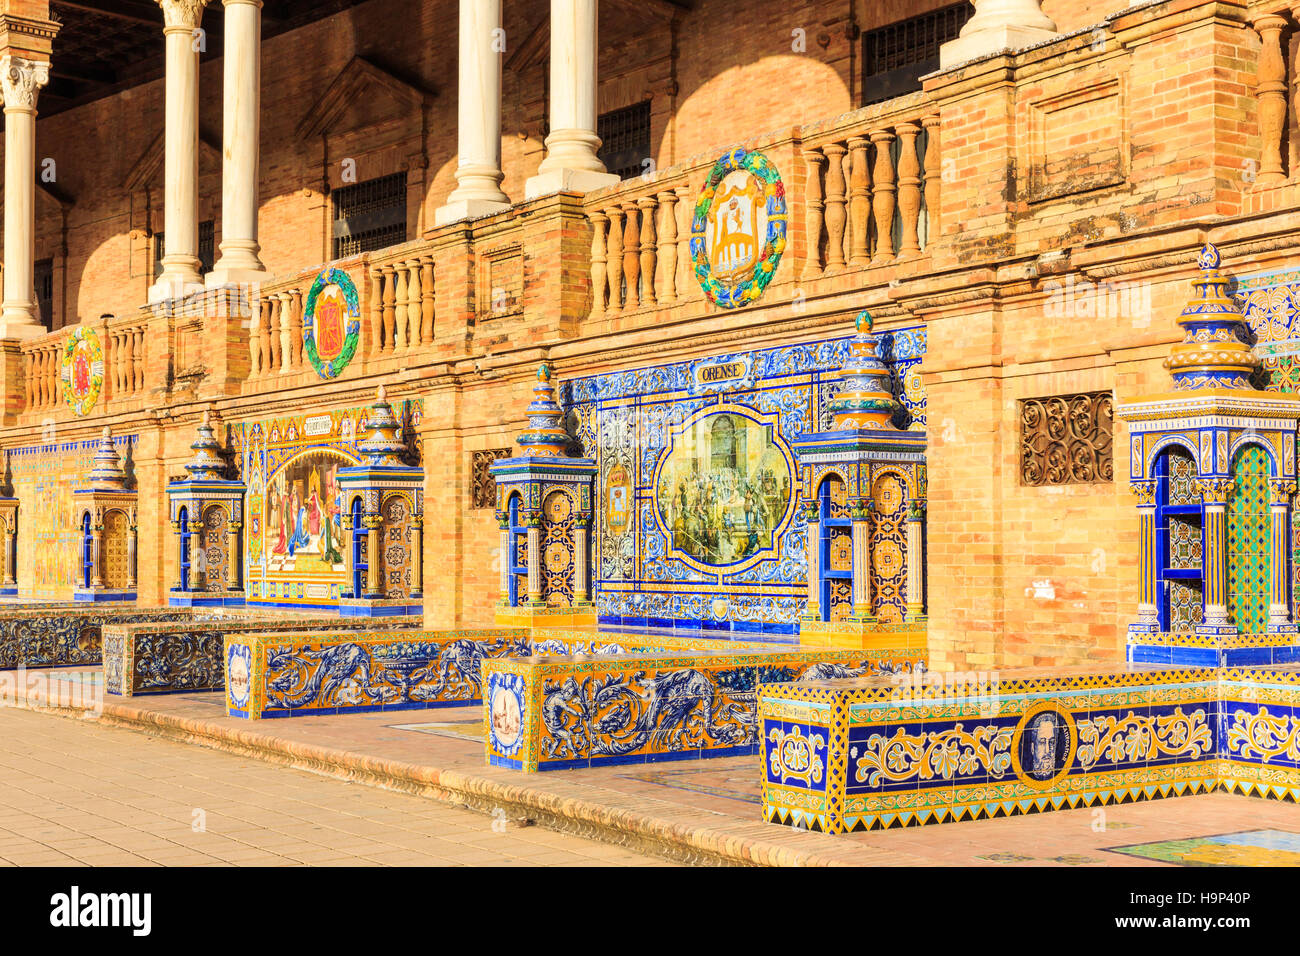 Seville, Spain. Tiled walls of Spanish Square (Plaza de Espana) Stock Photo